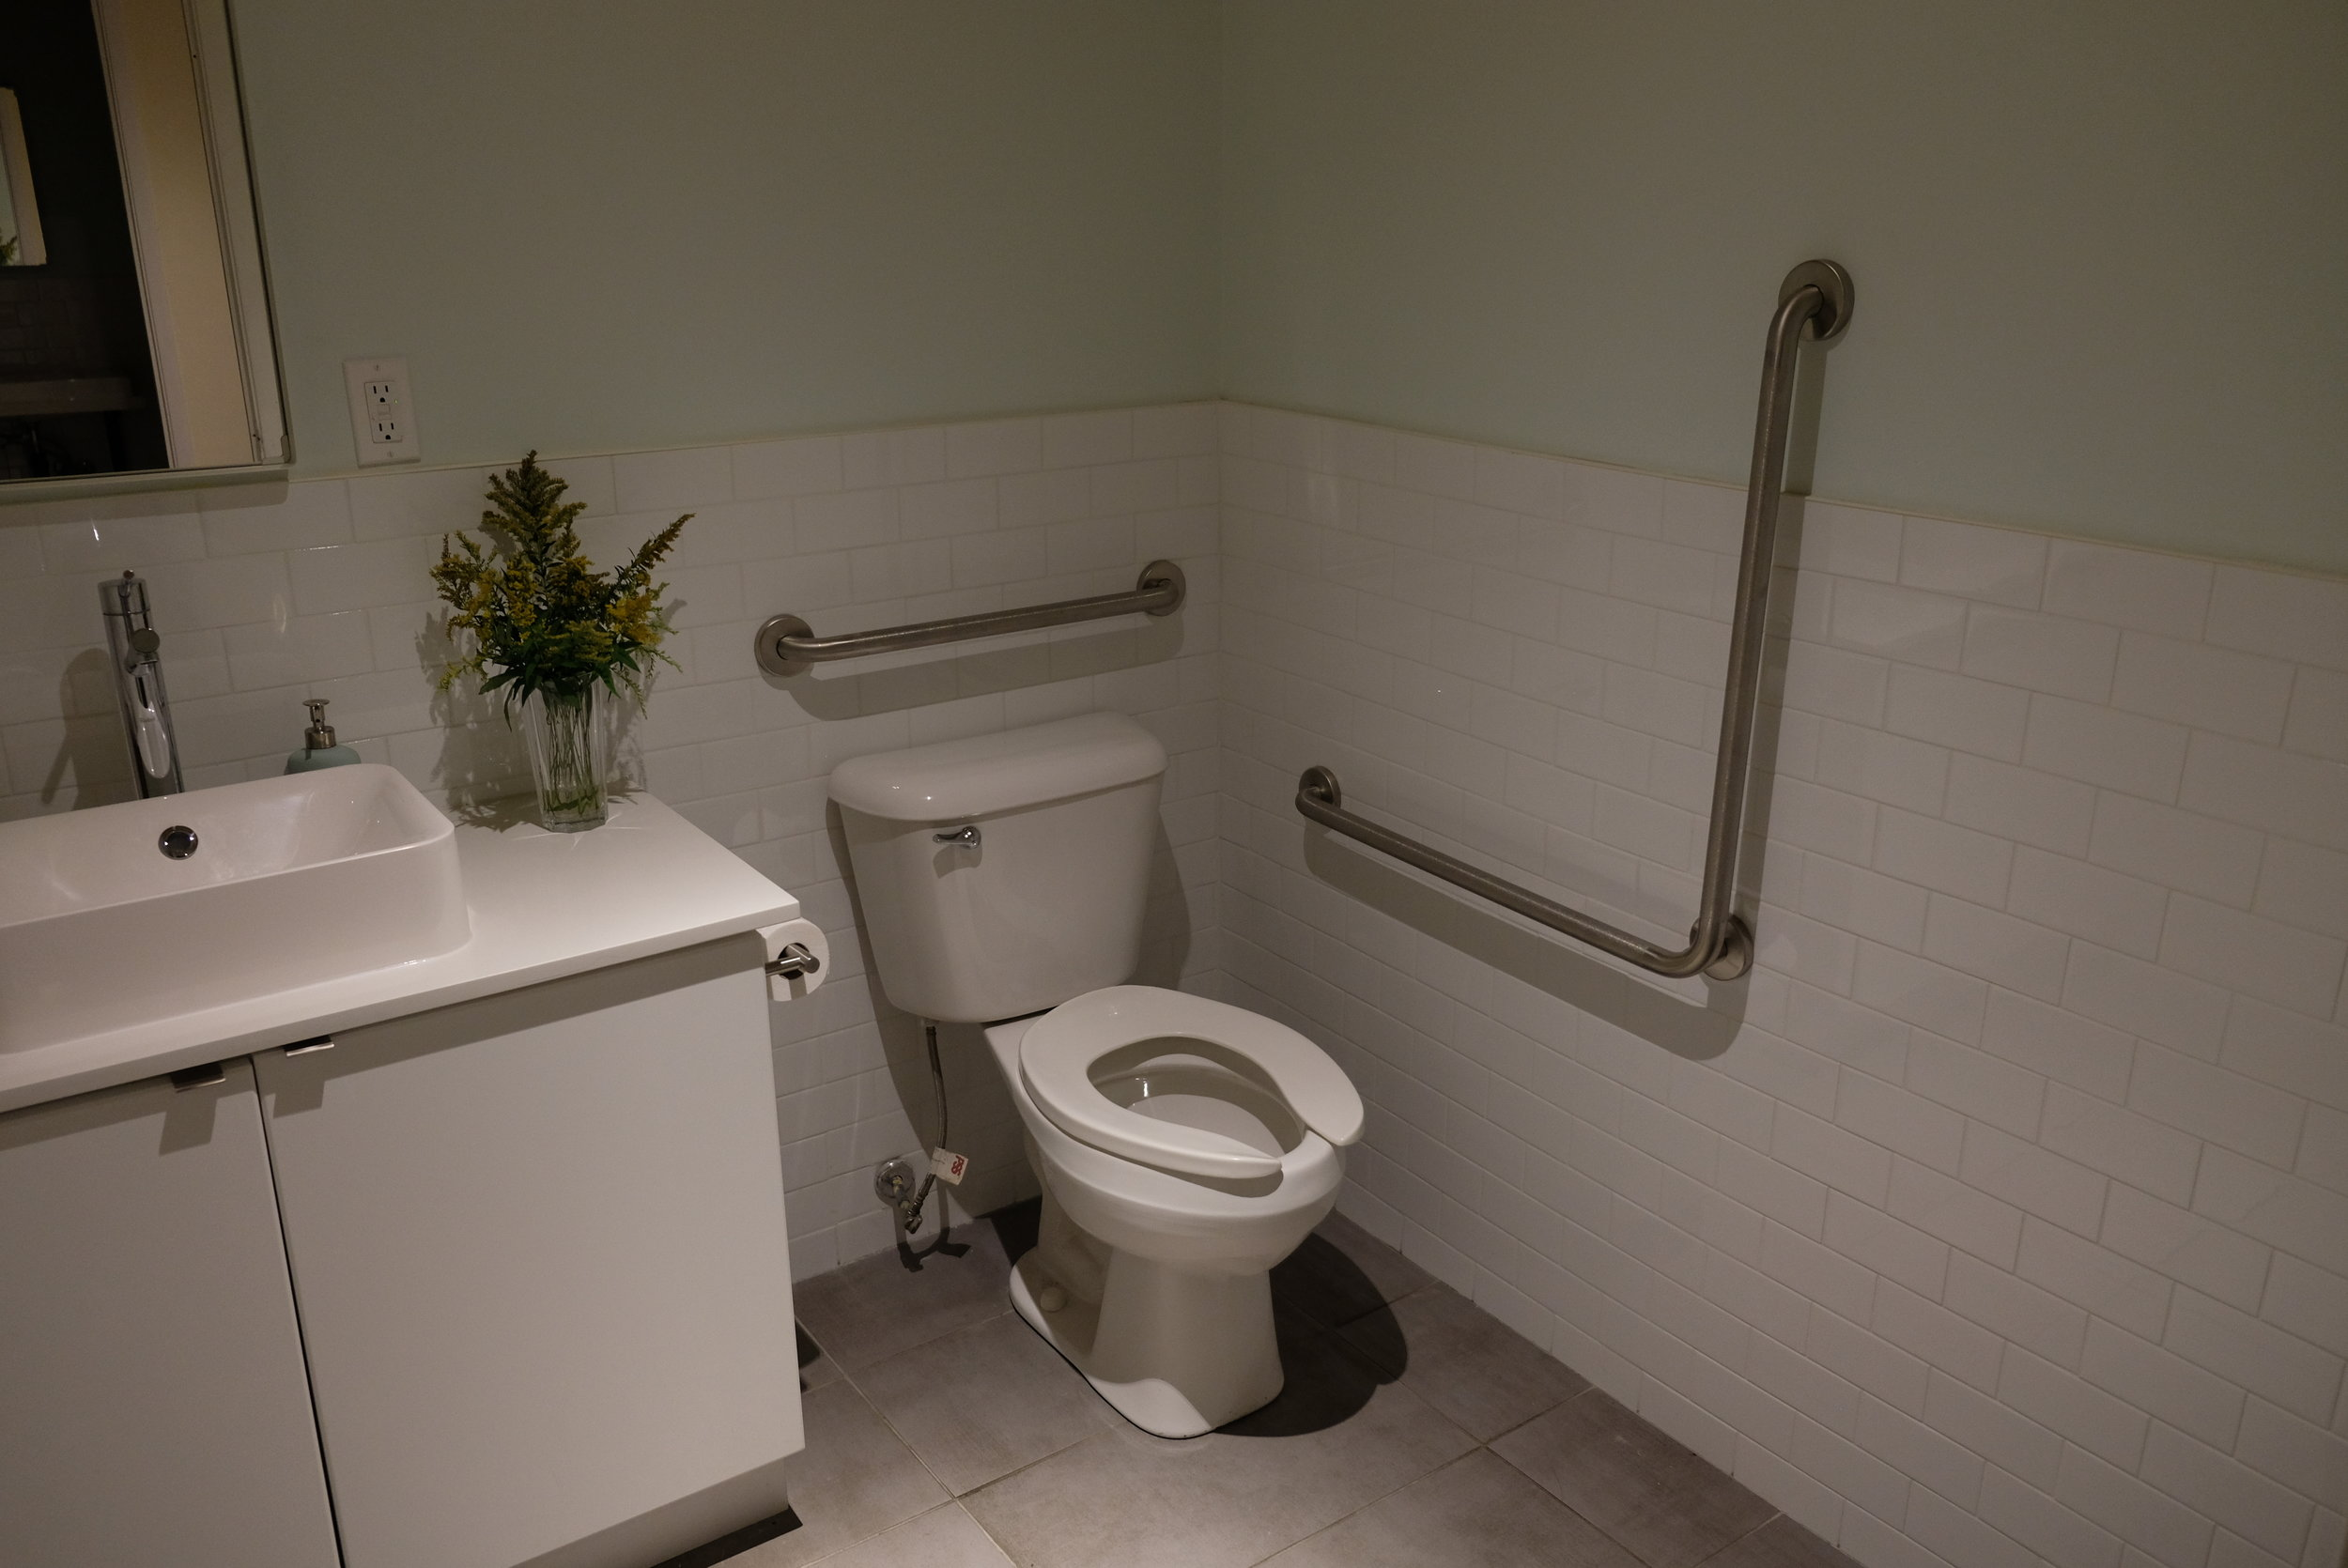 Picture of accessible washroom at Alma